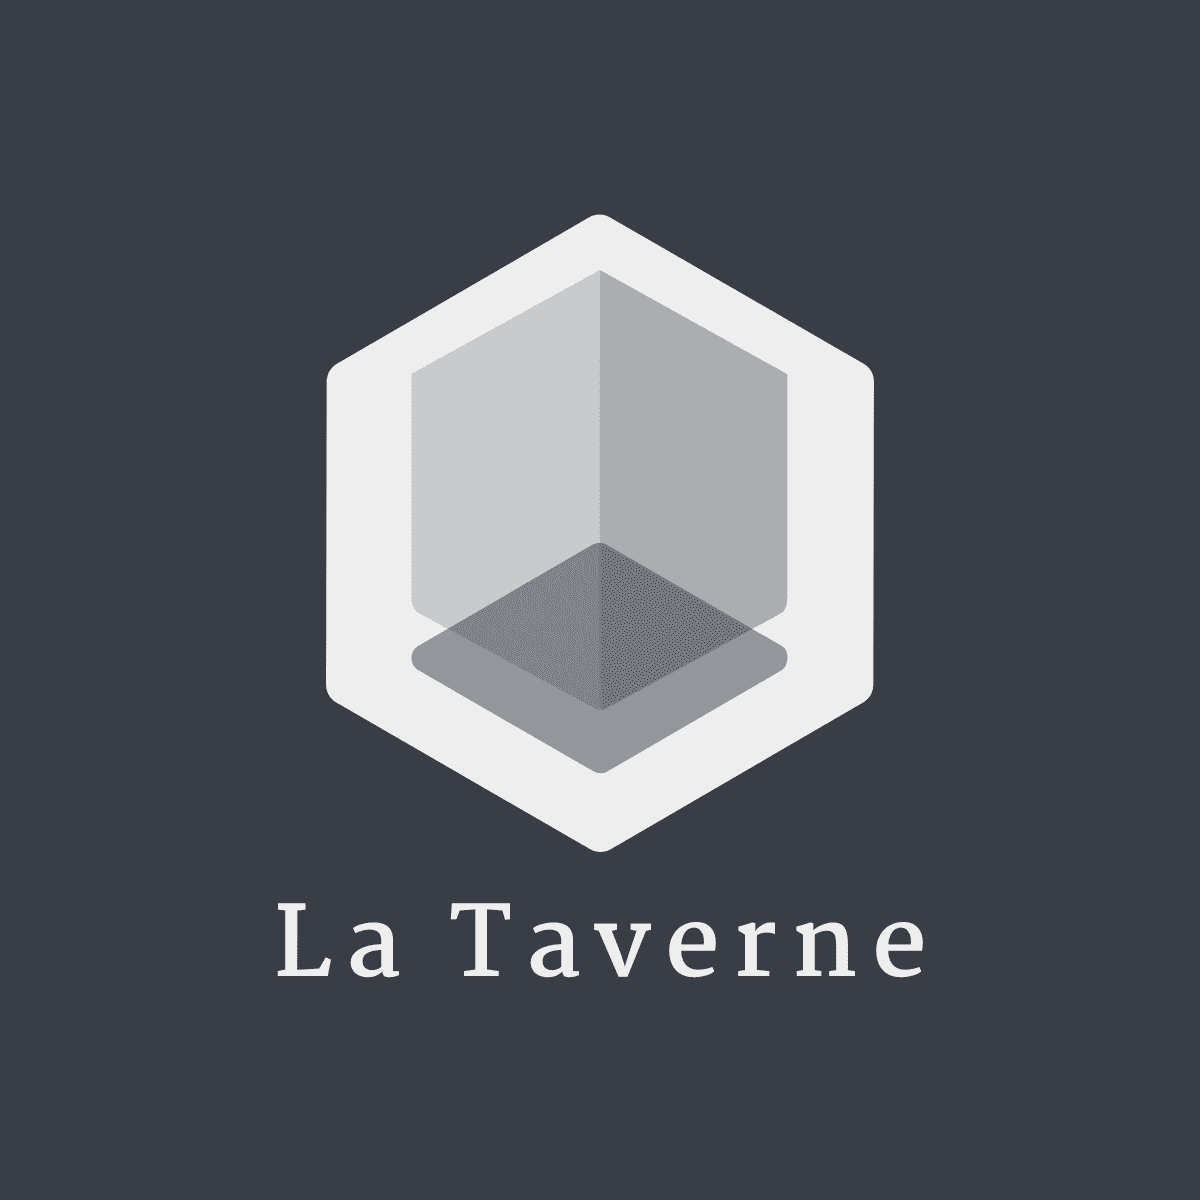 La Taverne - Actual Play